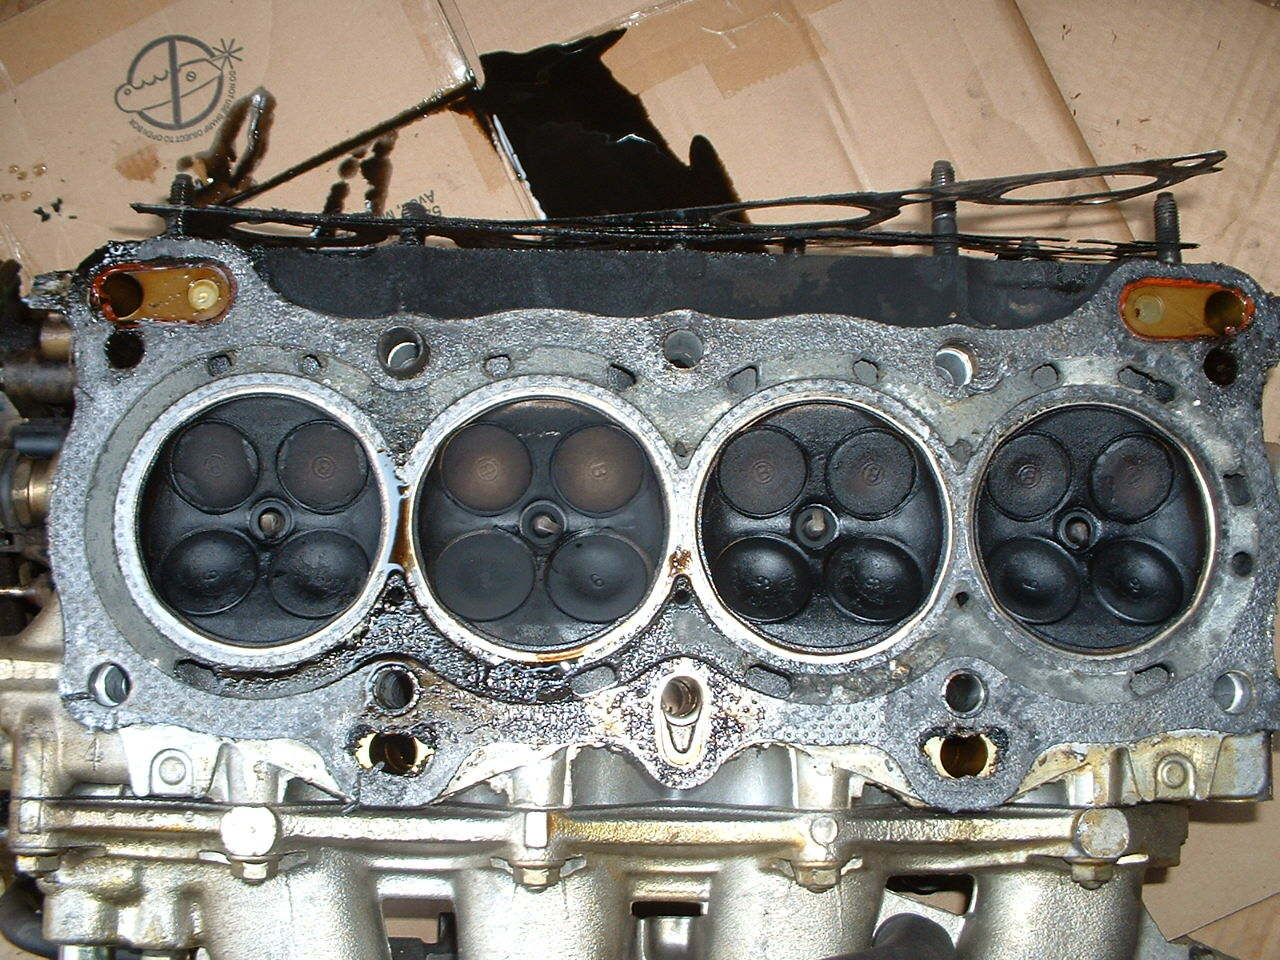 Re broken timing belt pics of valves and pistons advice needed zchf